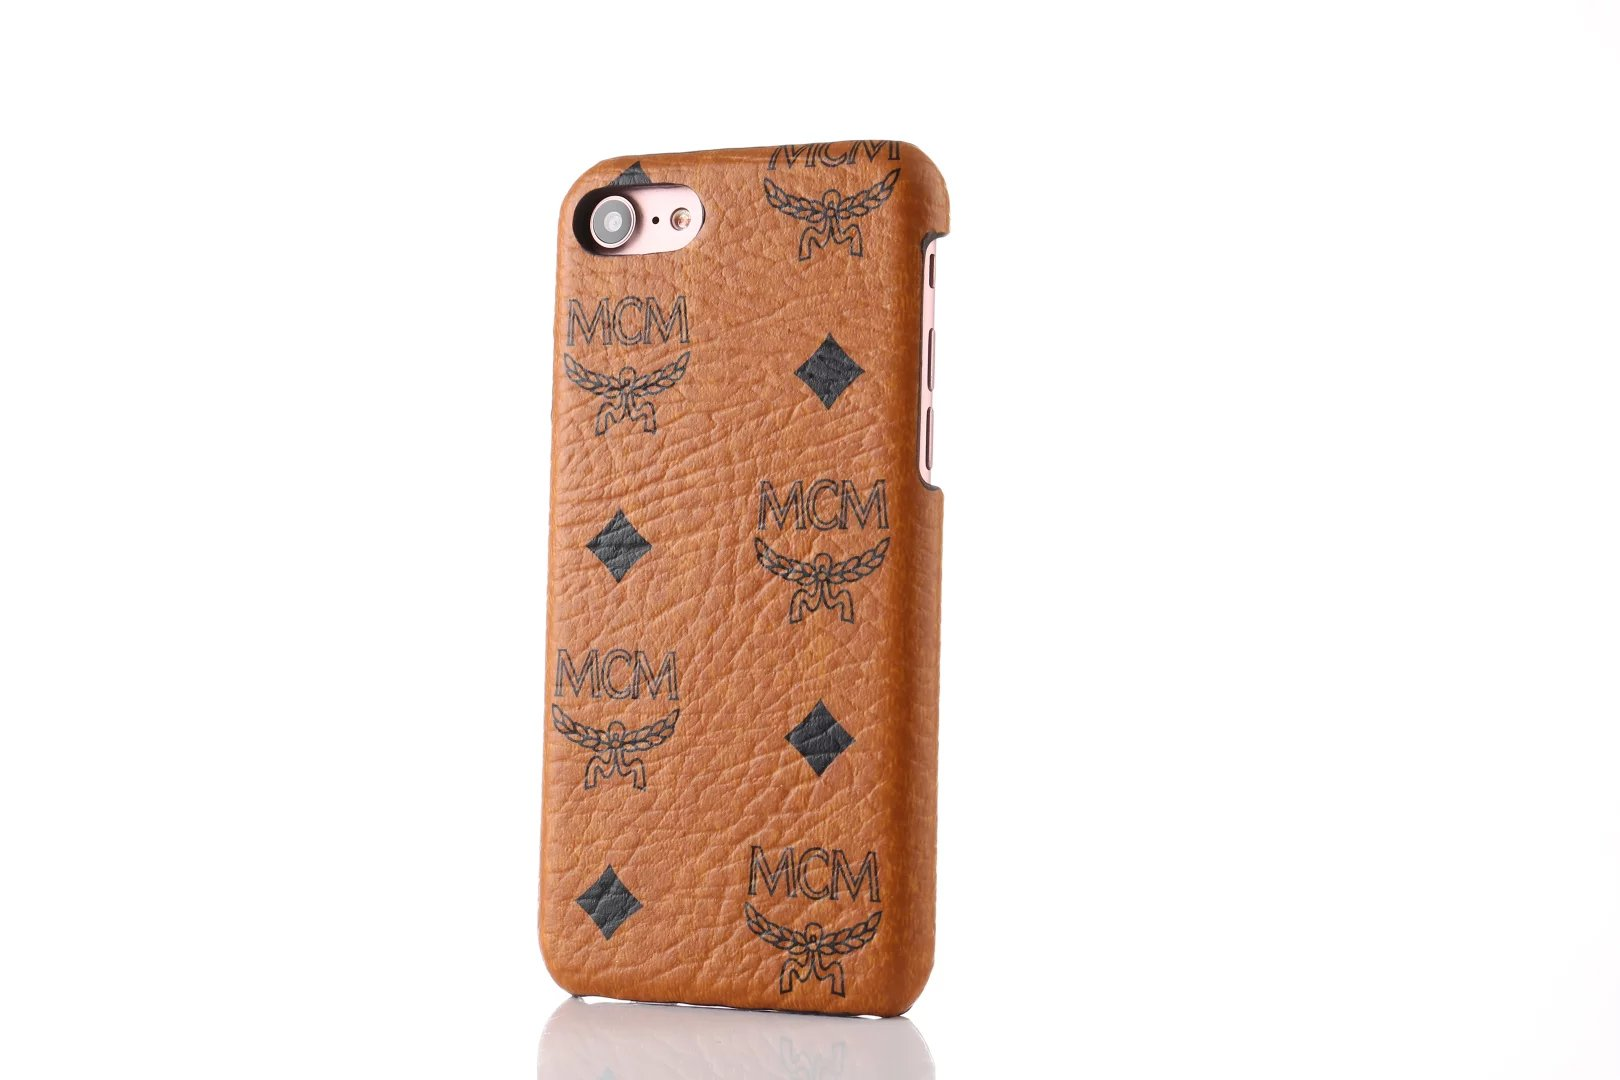 iphone 6s case fashion designer iphone 6s covers fashion iphone6s case buy iphone 6s case new iphone 6s iphone case photo best iphone case website iphone 6s case best cover for mobile phone